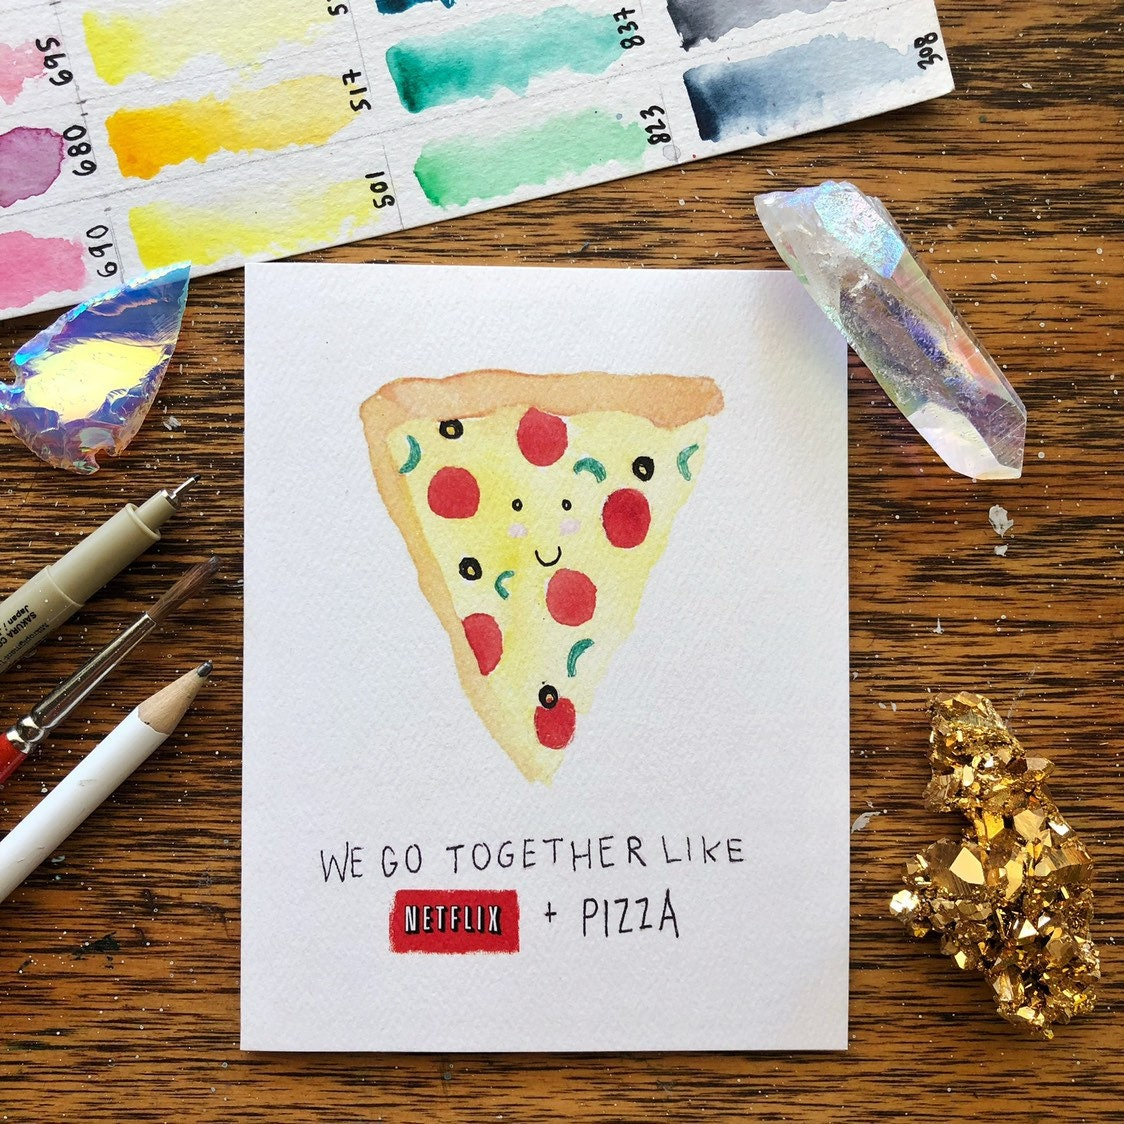 Netflix Pizza Grußkarte Aquarell TV | Etsy